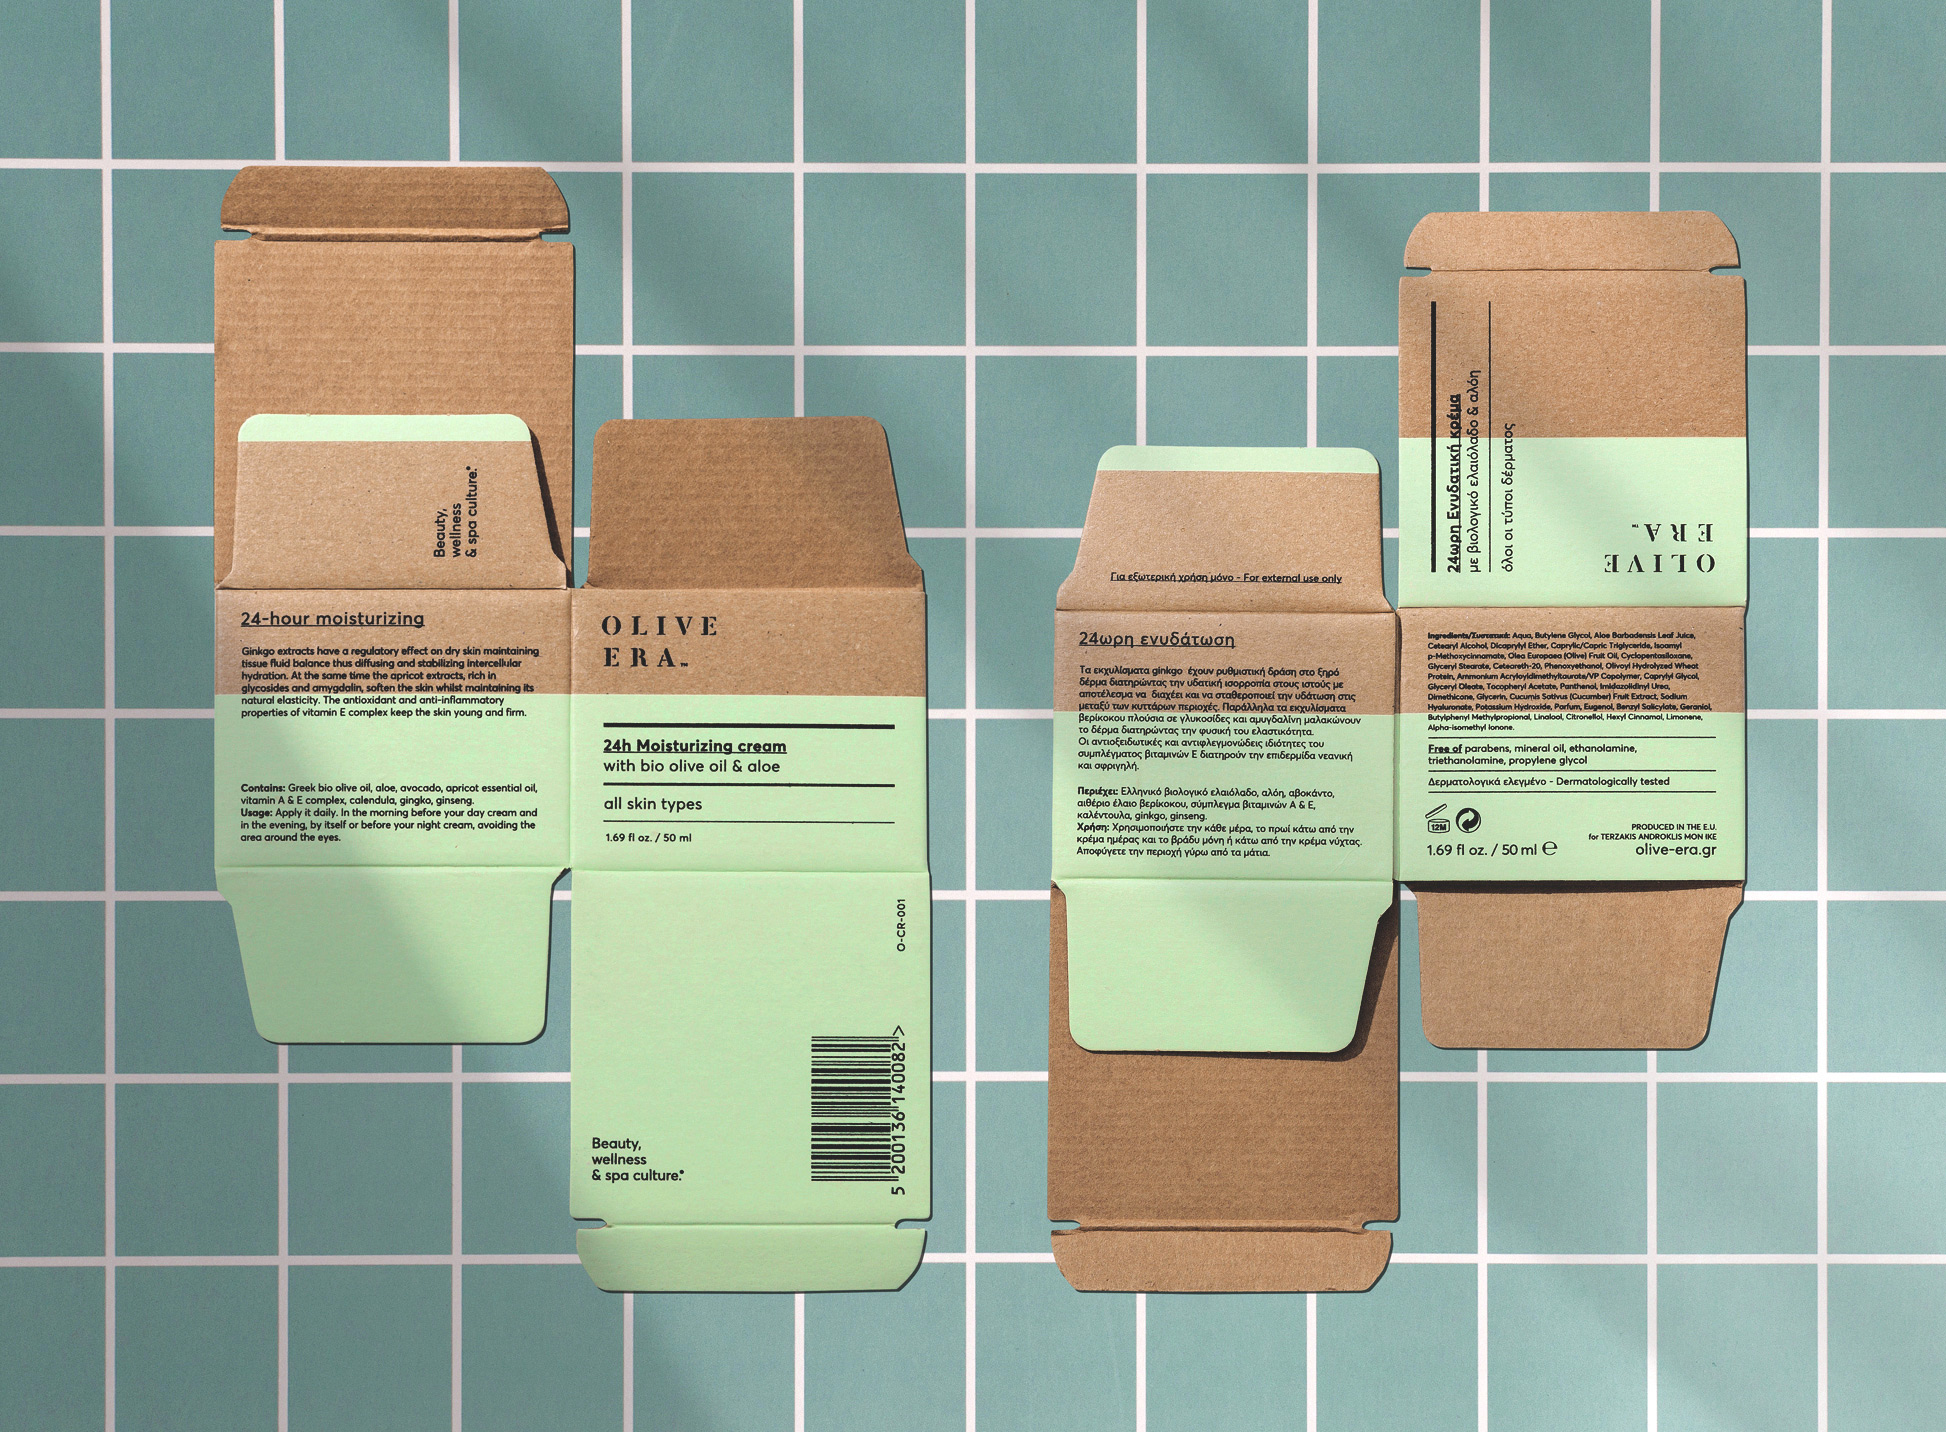 Olive Era Branding and Packaging Created by Aris Goumpouros